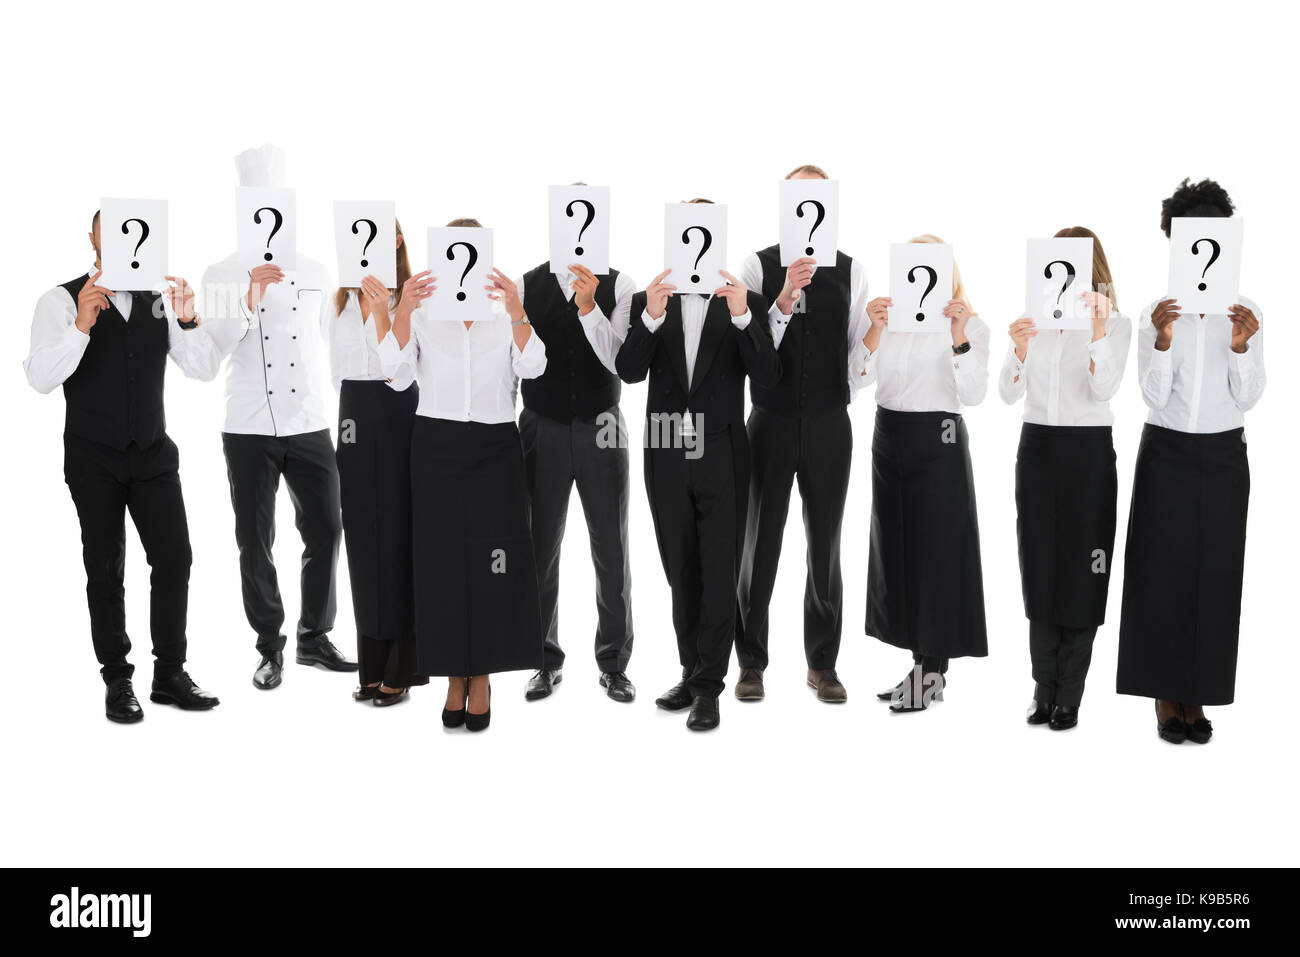 Full length of restaurant staff hiding faces with question mark signs against white background - Stock Image